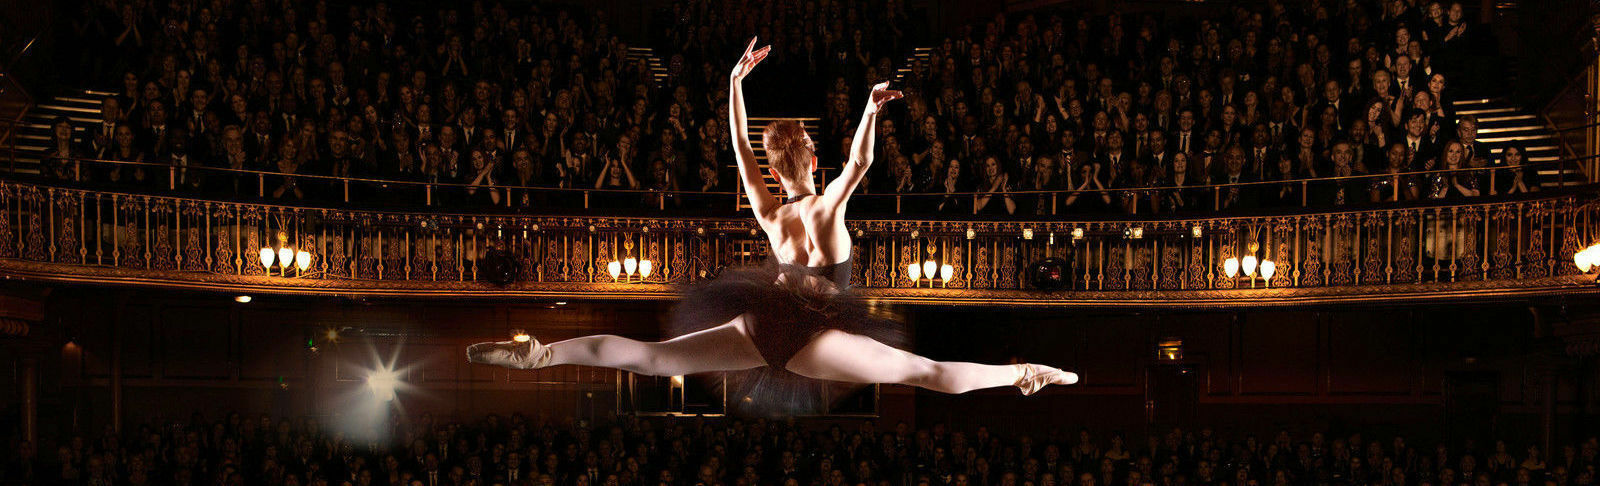 San Francisco Ballet - Distinctly SF Ballet